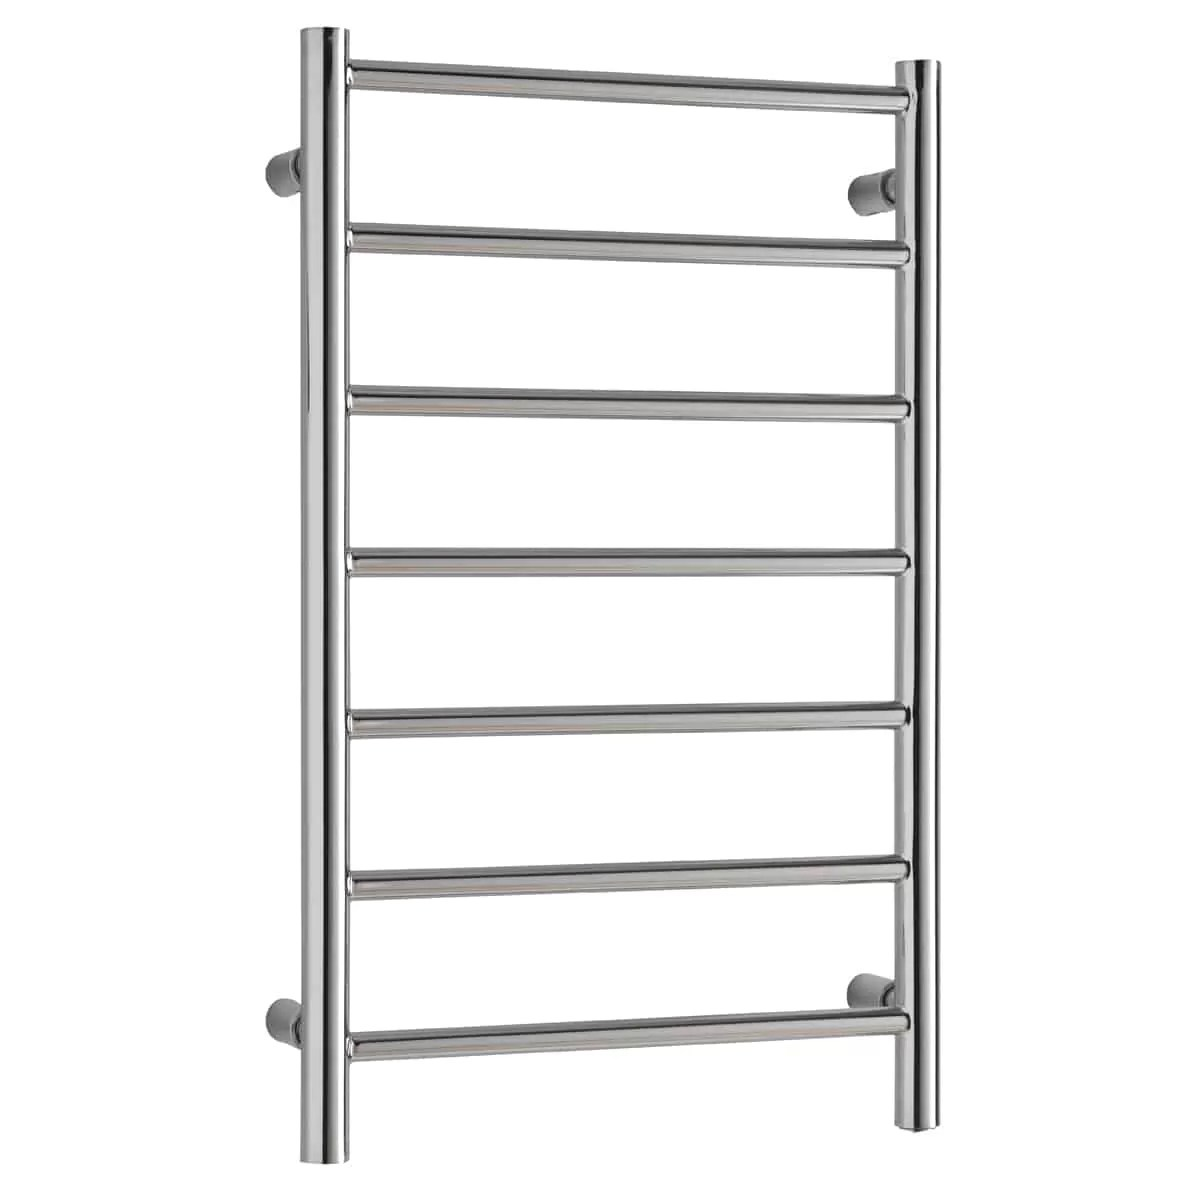 ALPINE Modern Heated Towel Rail / Warmer, Chrome